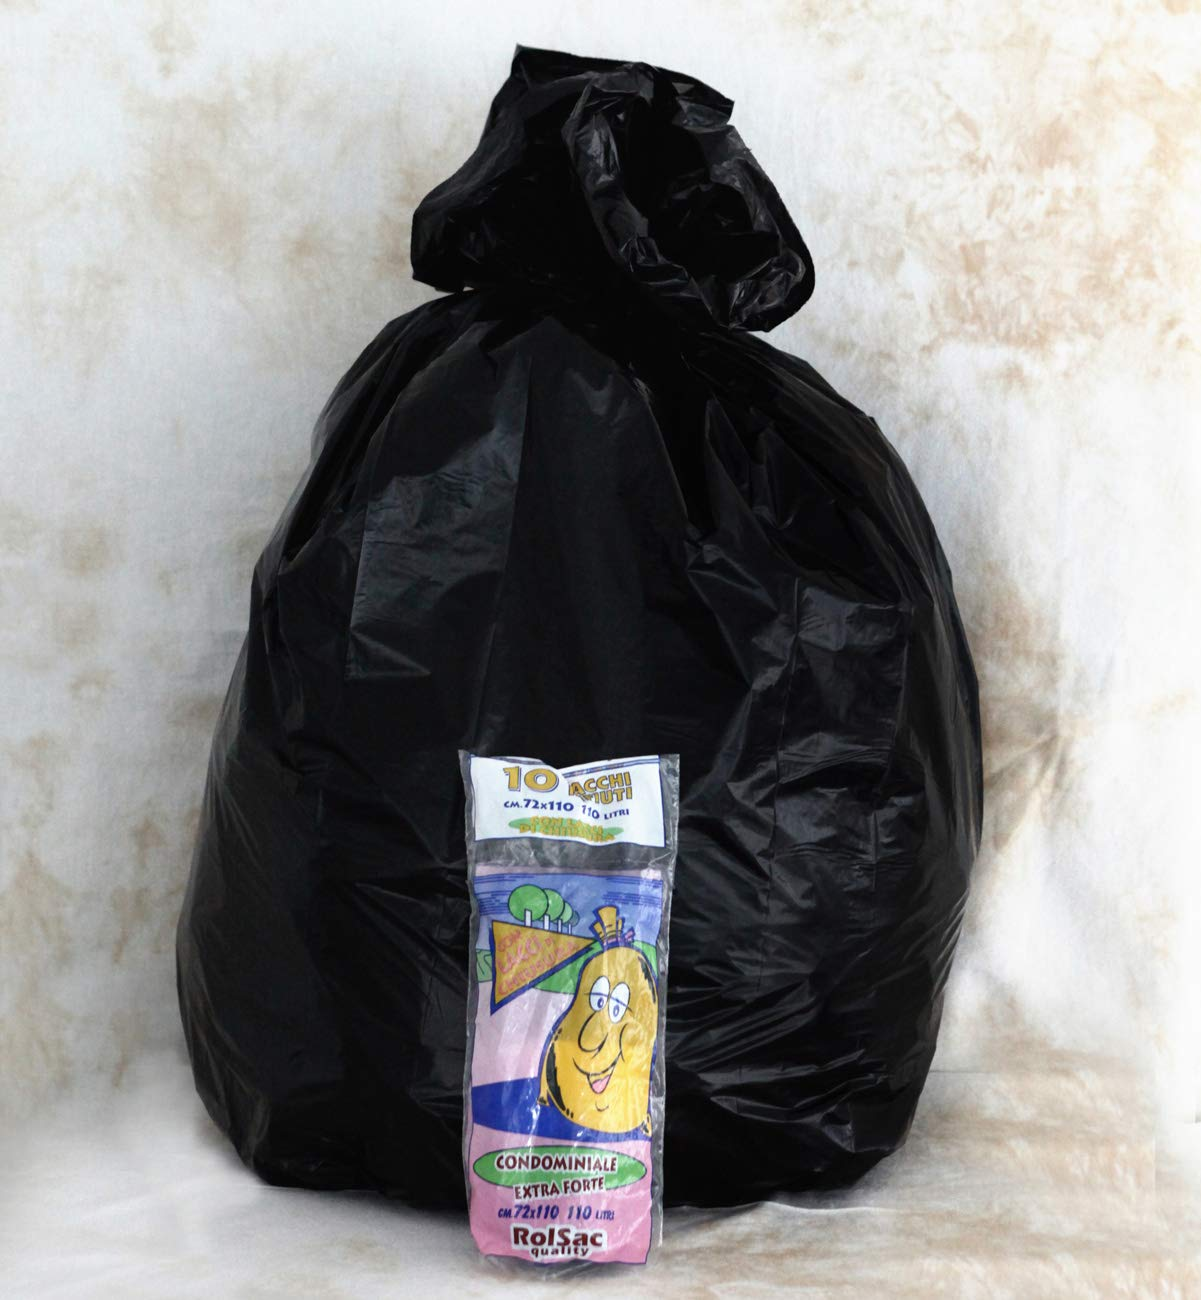 72 x 110 cm Black Cagliplast Q.Ty Roll with Outer Bag Rolsac